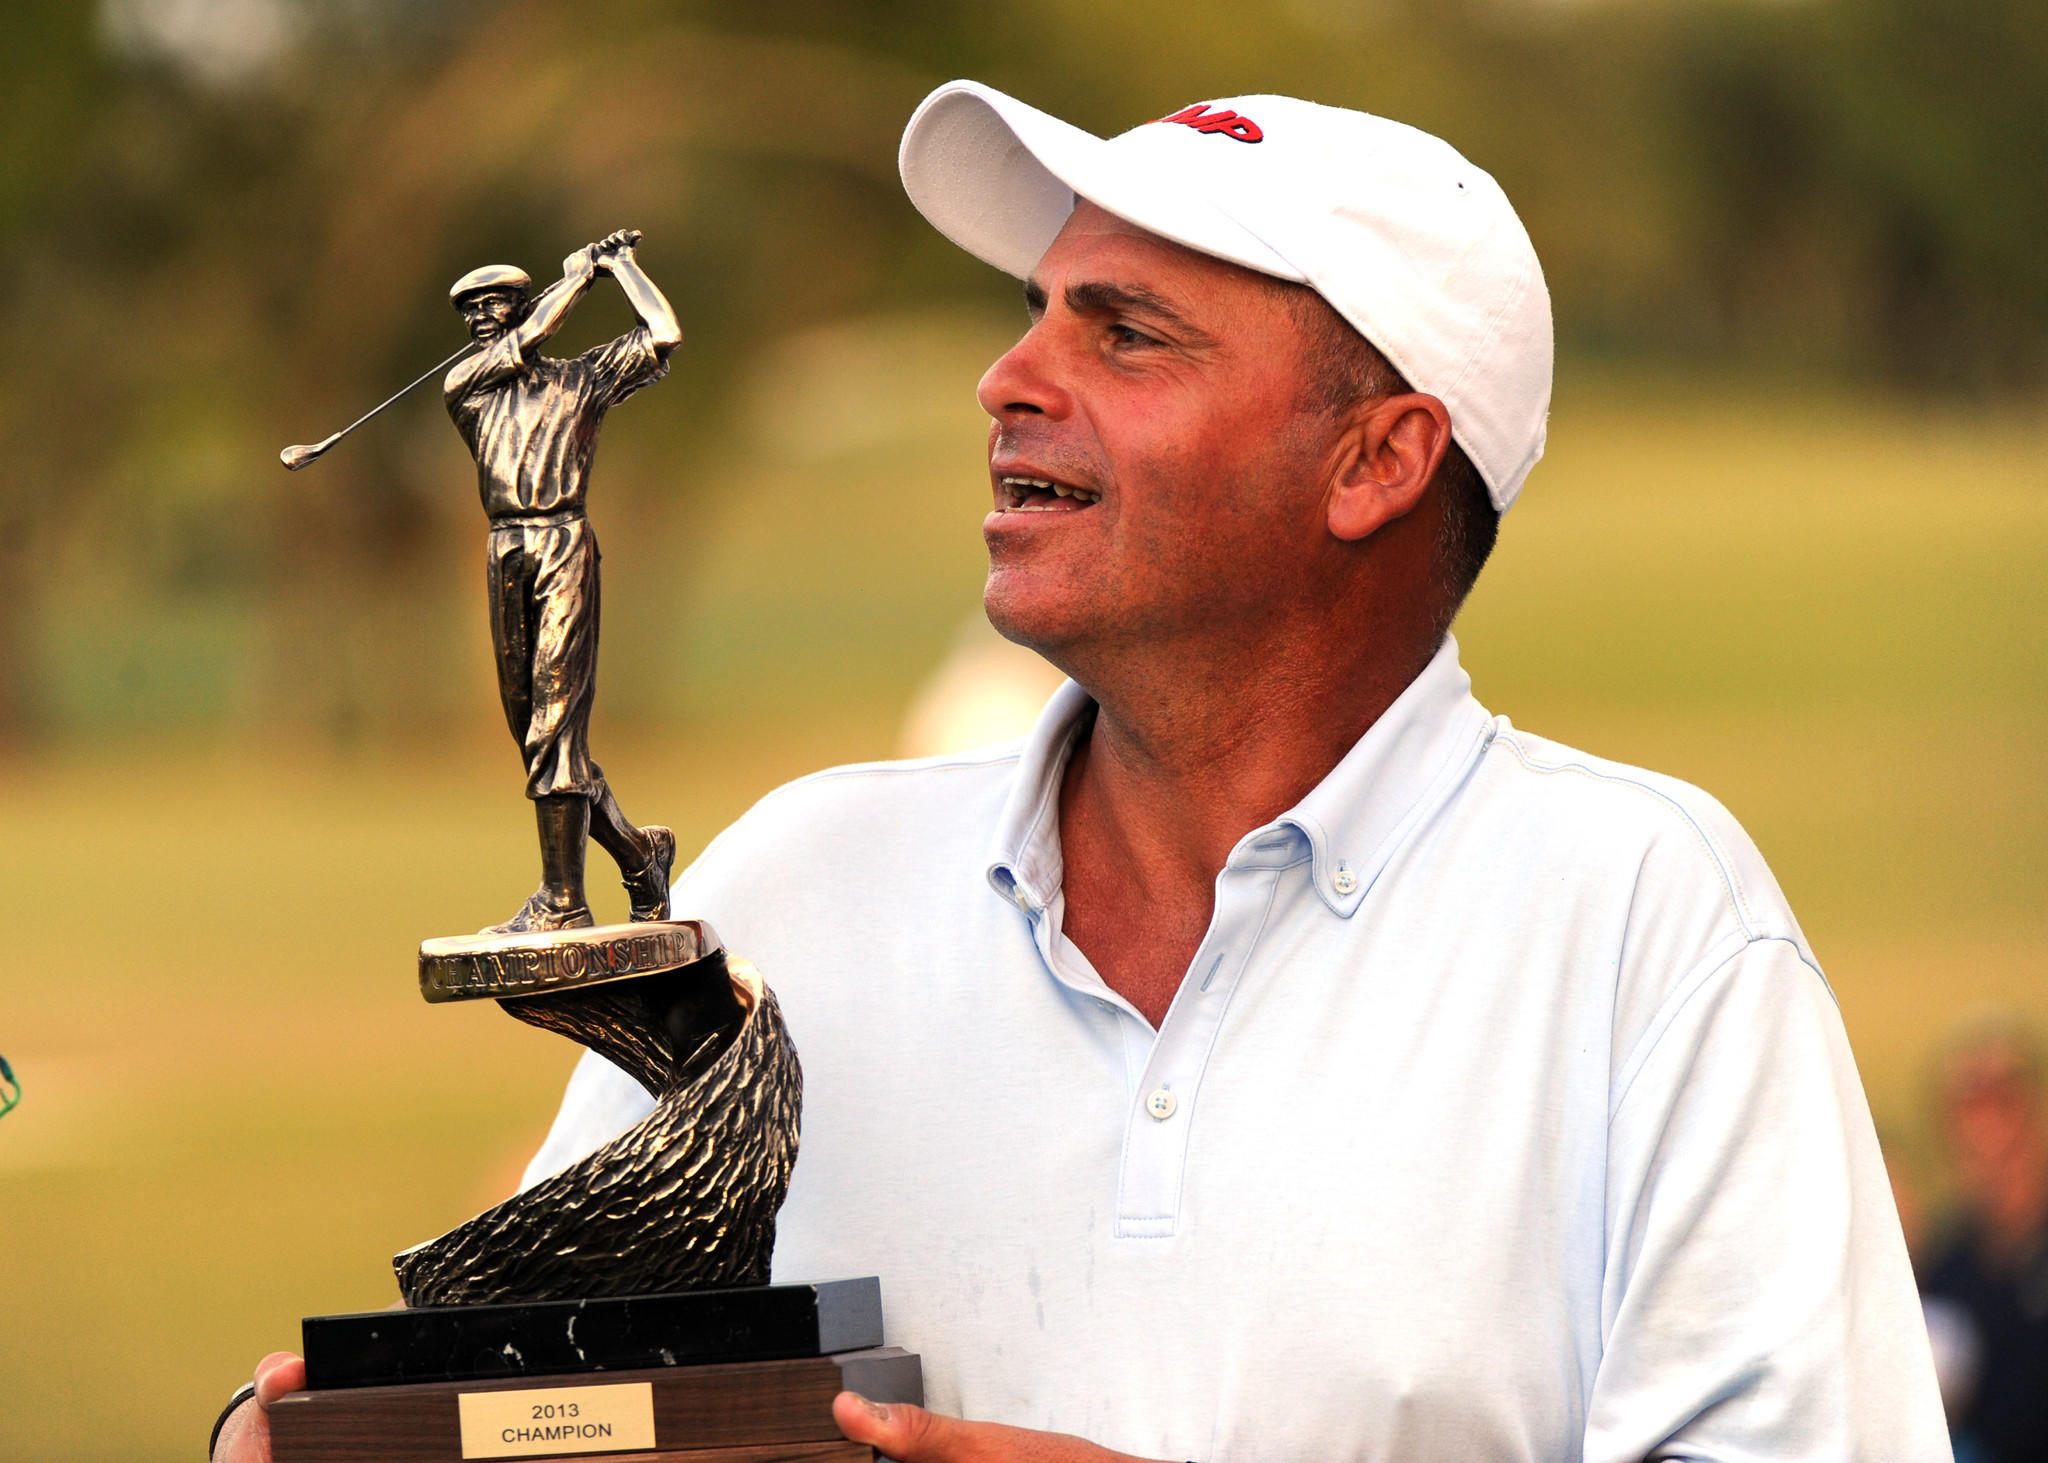 Rocco Mediate will be back to defend his Allianz Championship title Feb. 7-9 in Boca Raton.